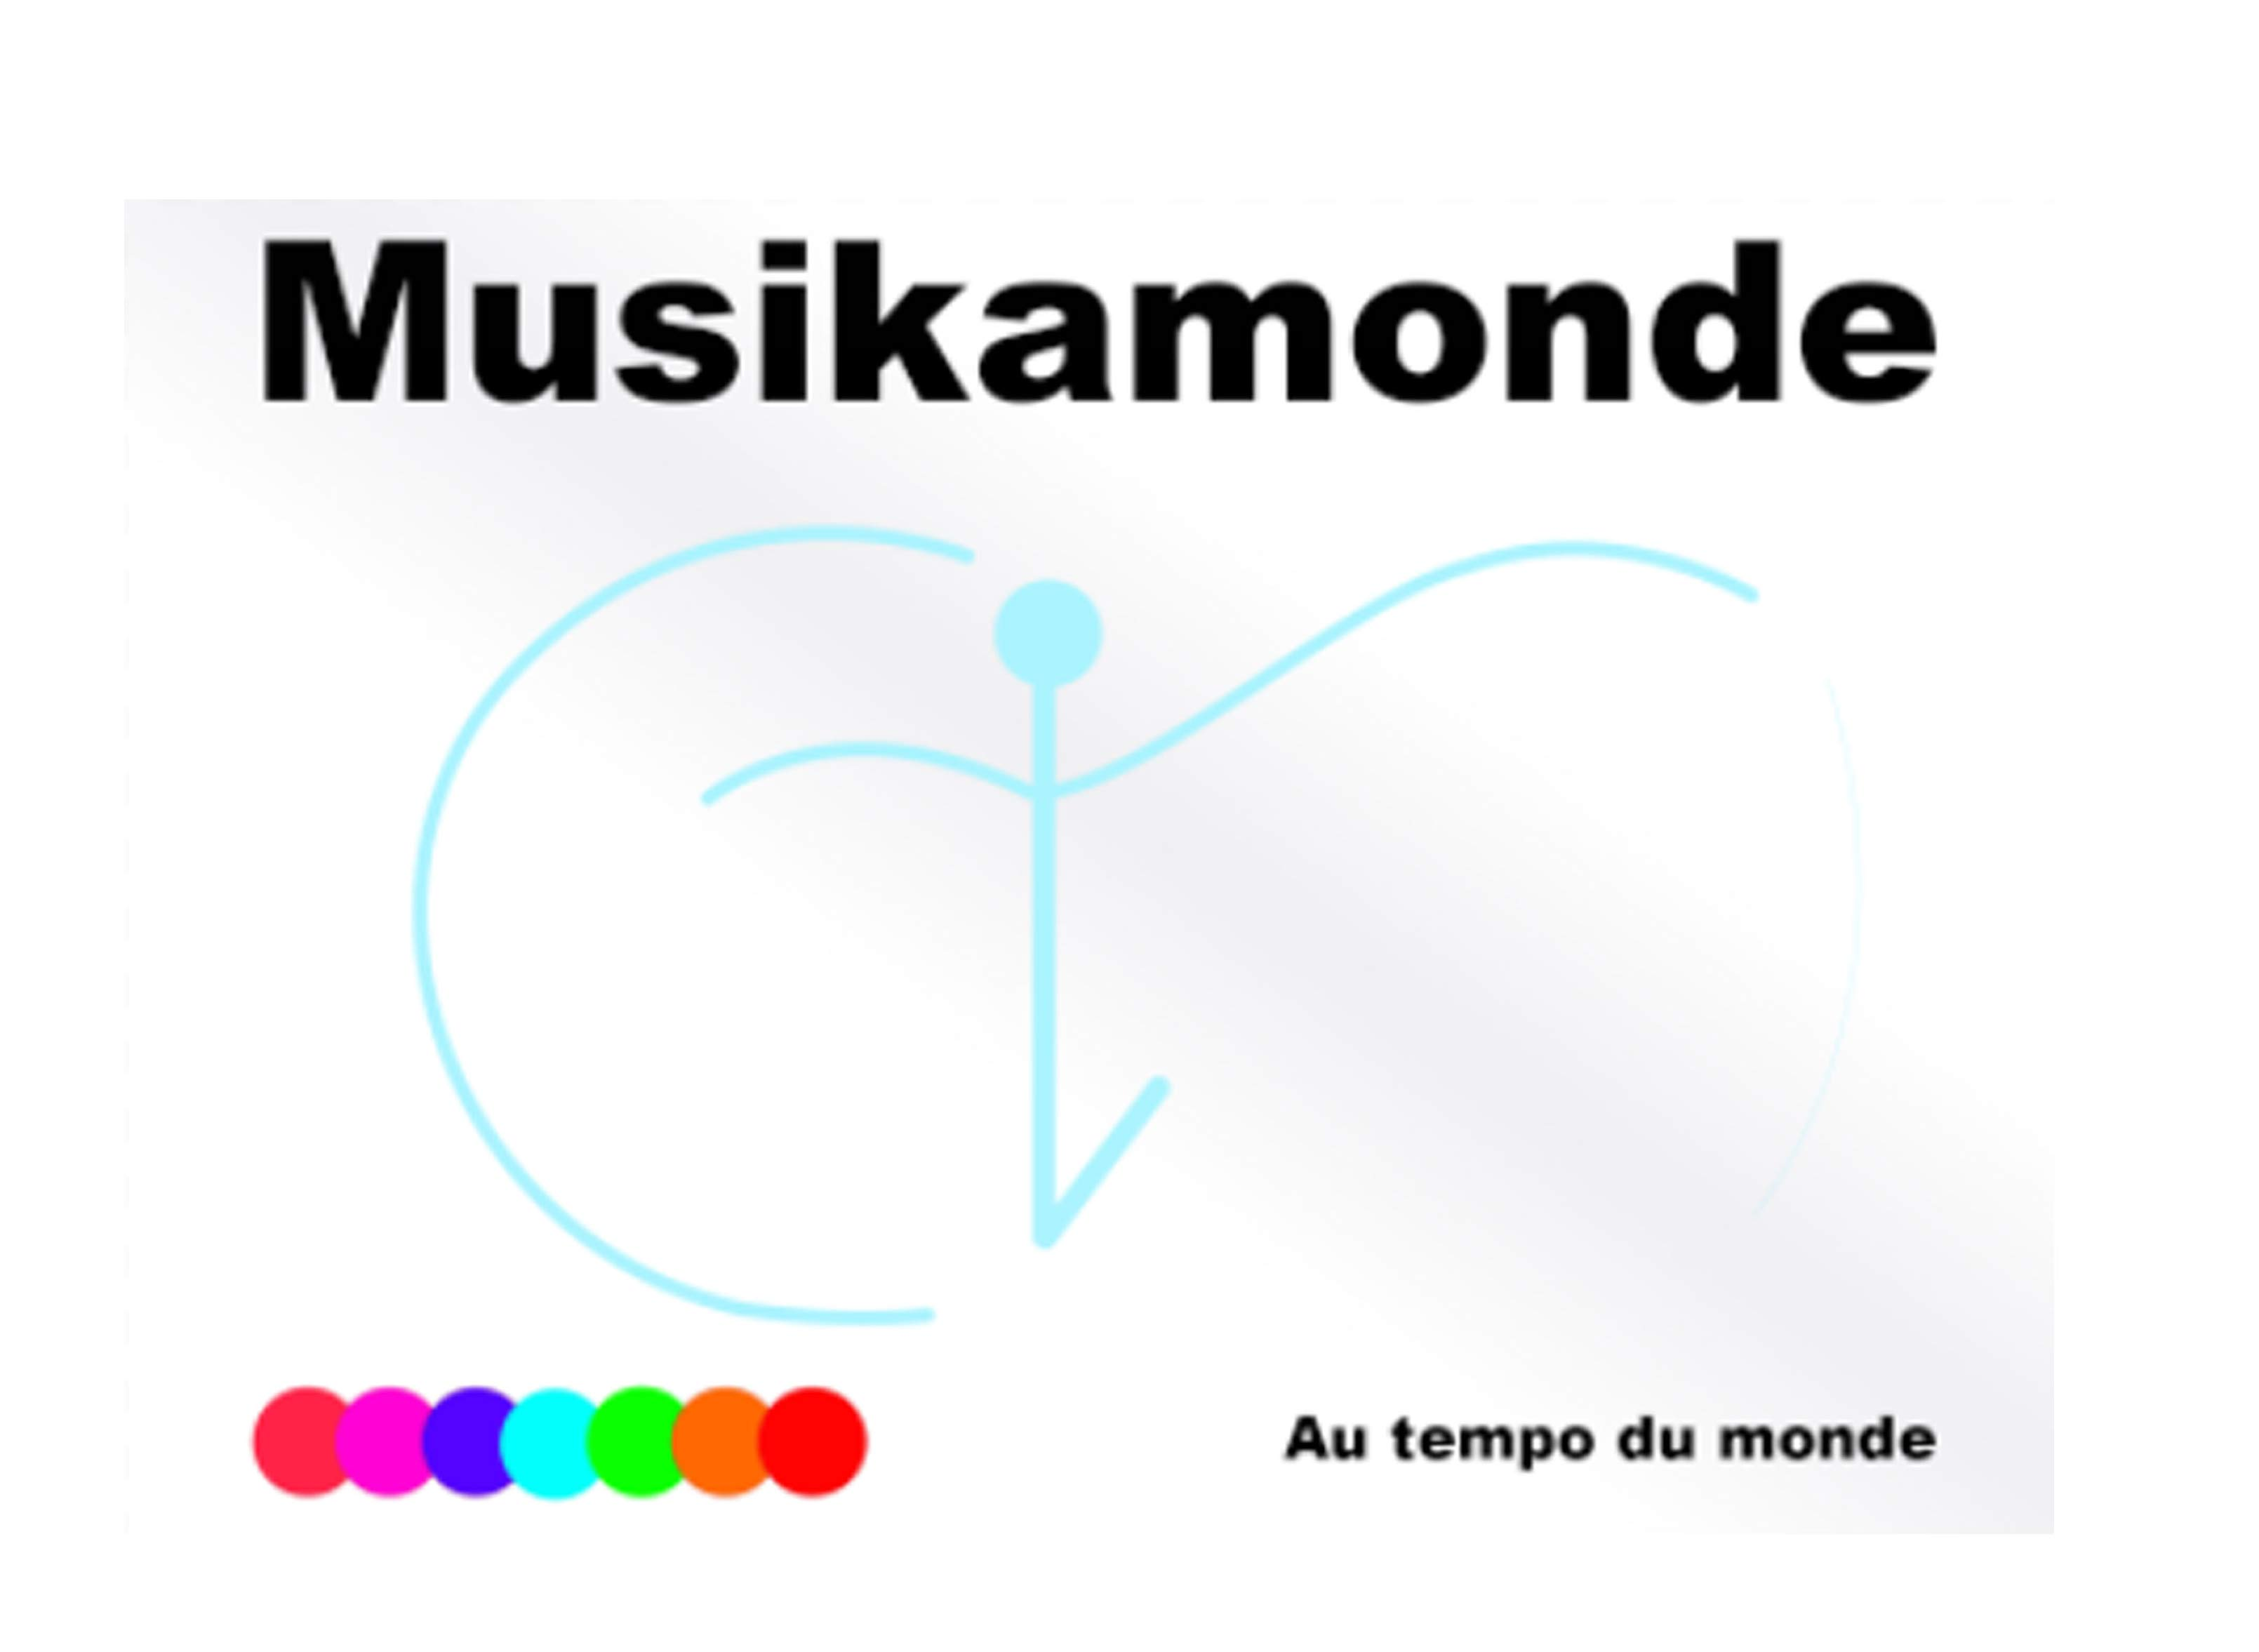 MusikaMonde Emission Radio Sylvie Mauchamp